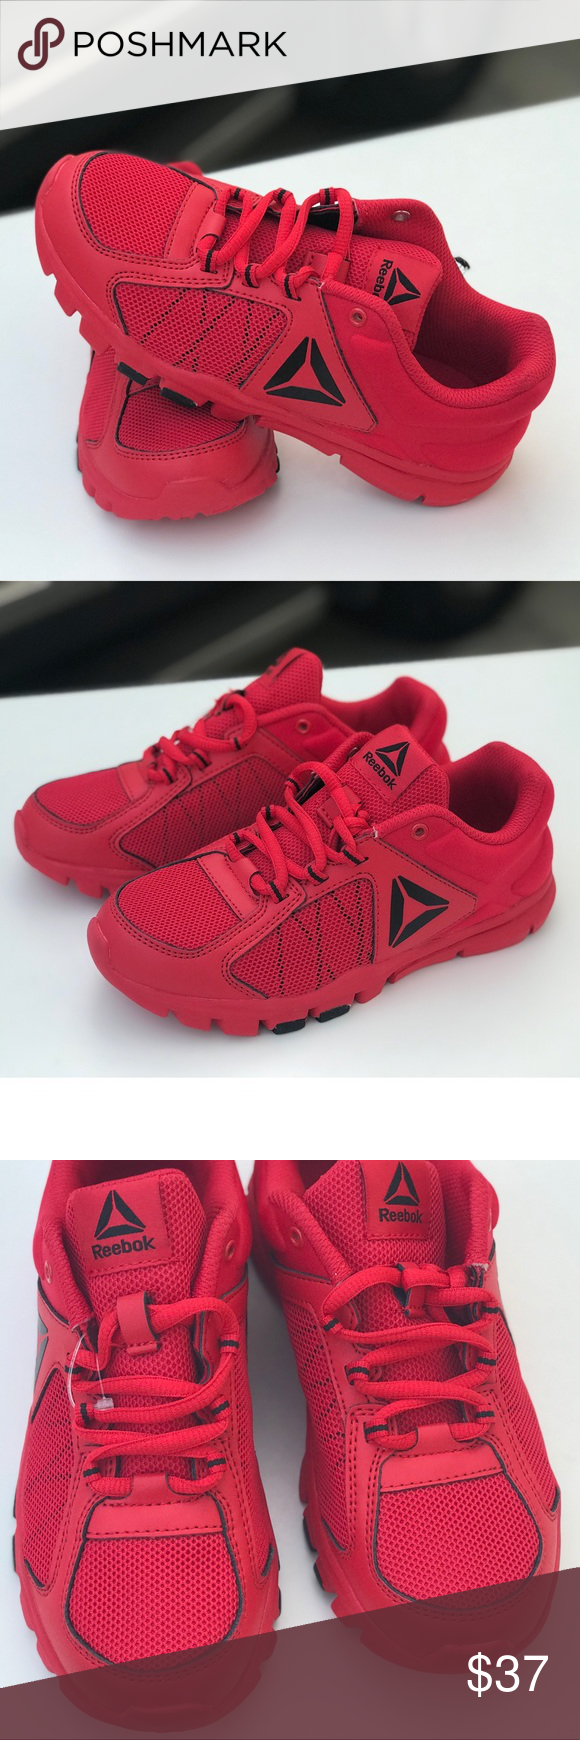 reebok shoes in red colour